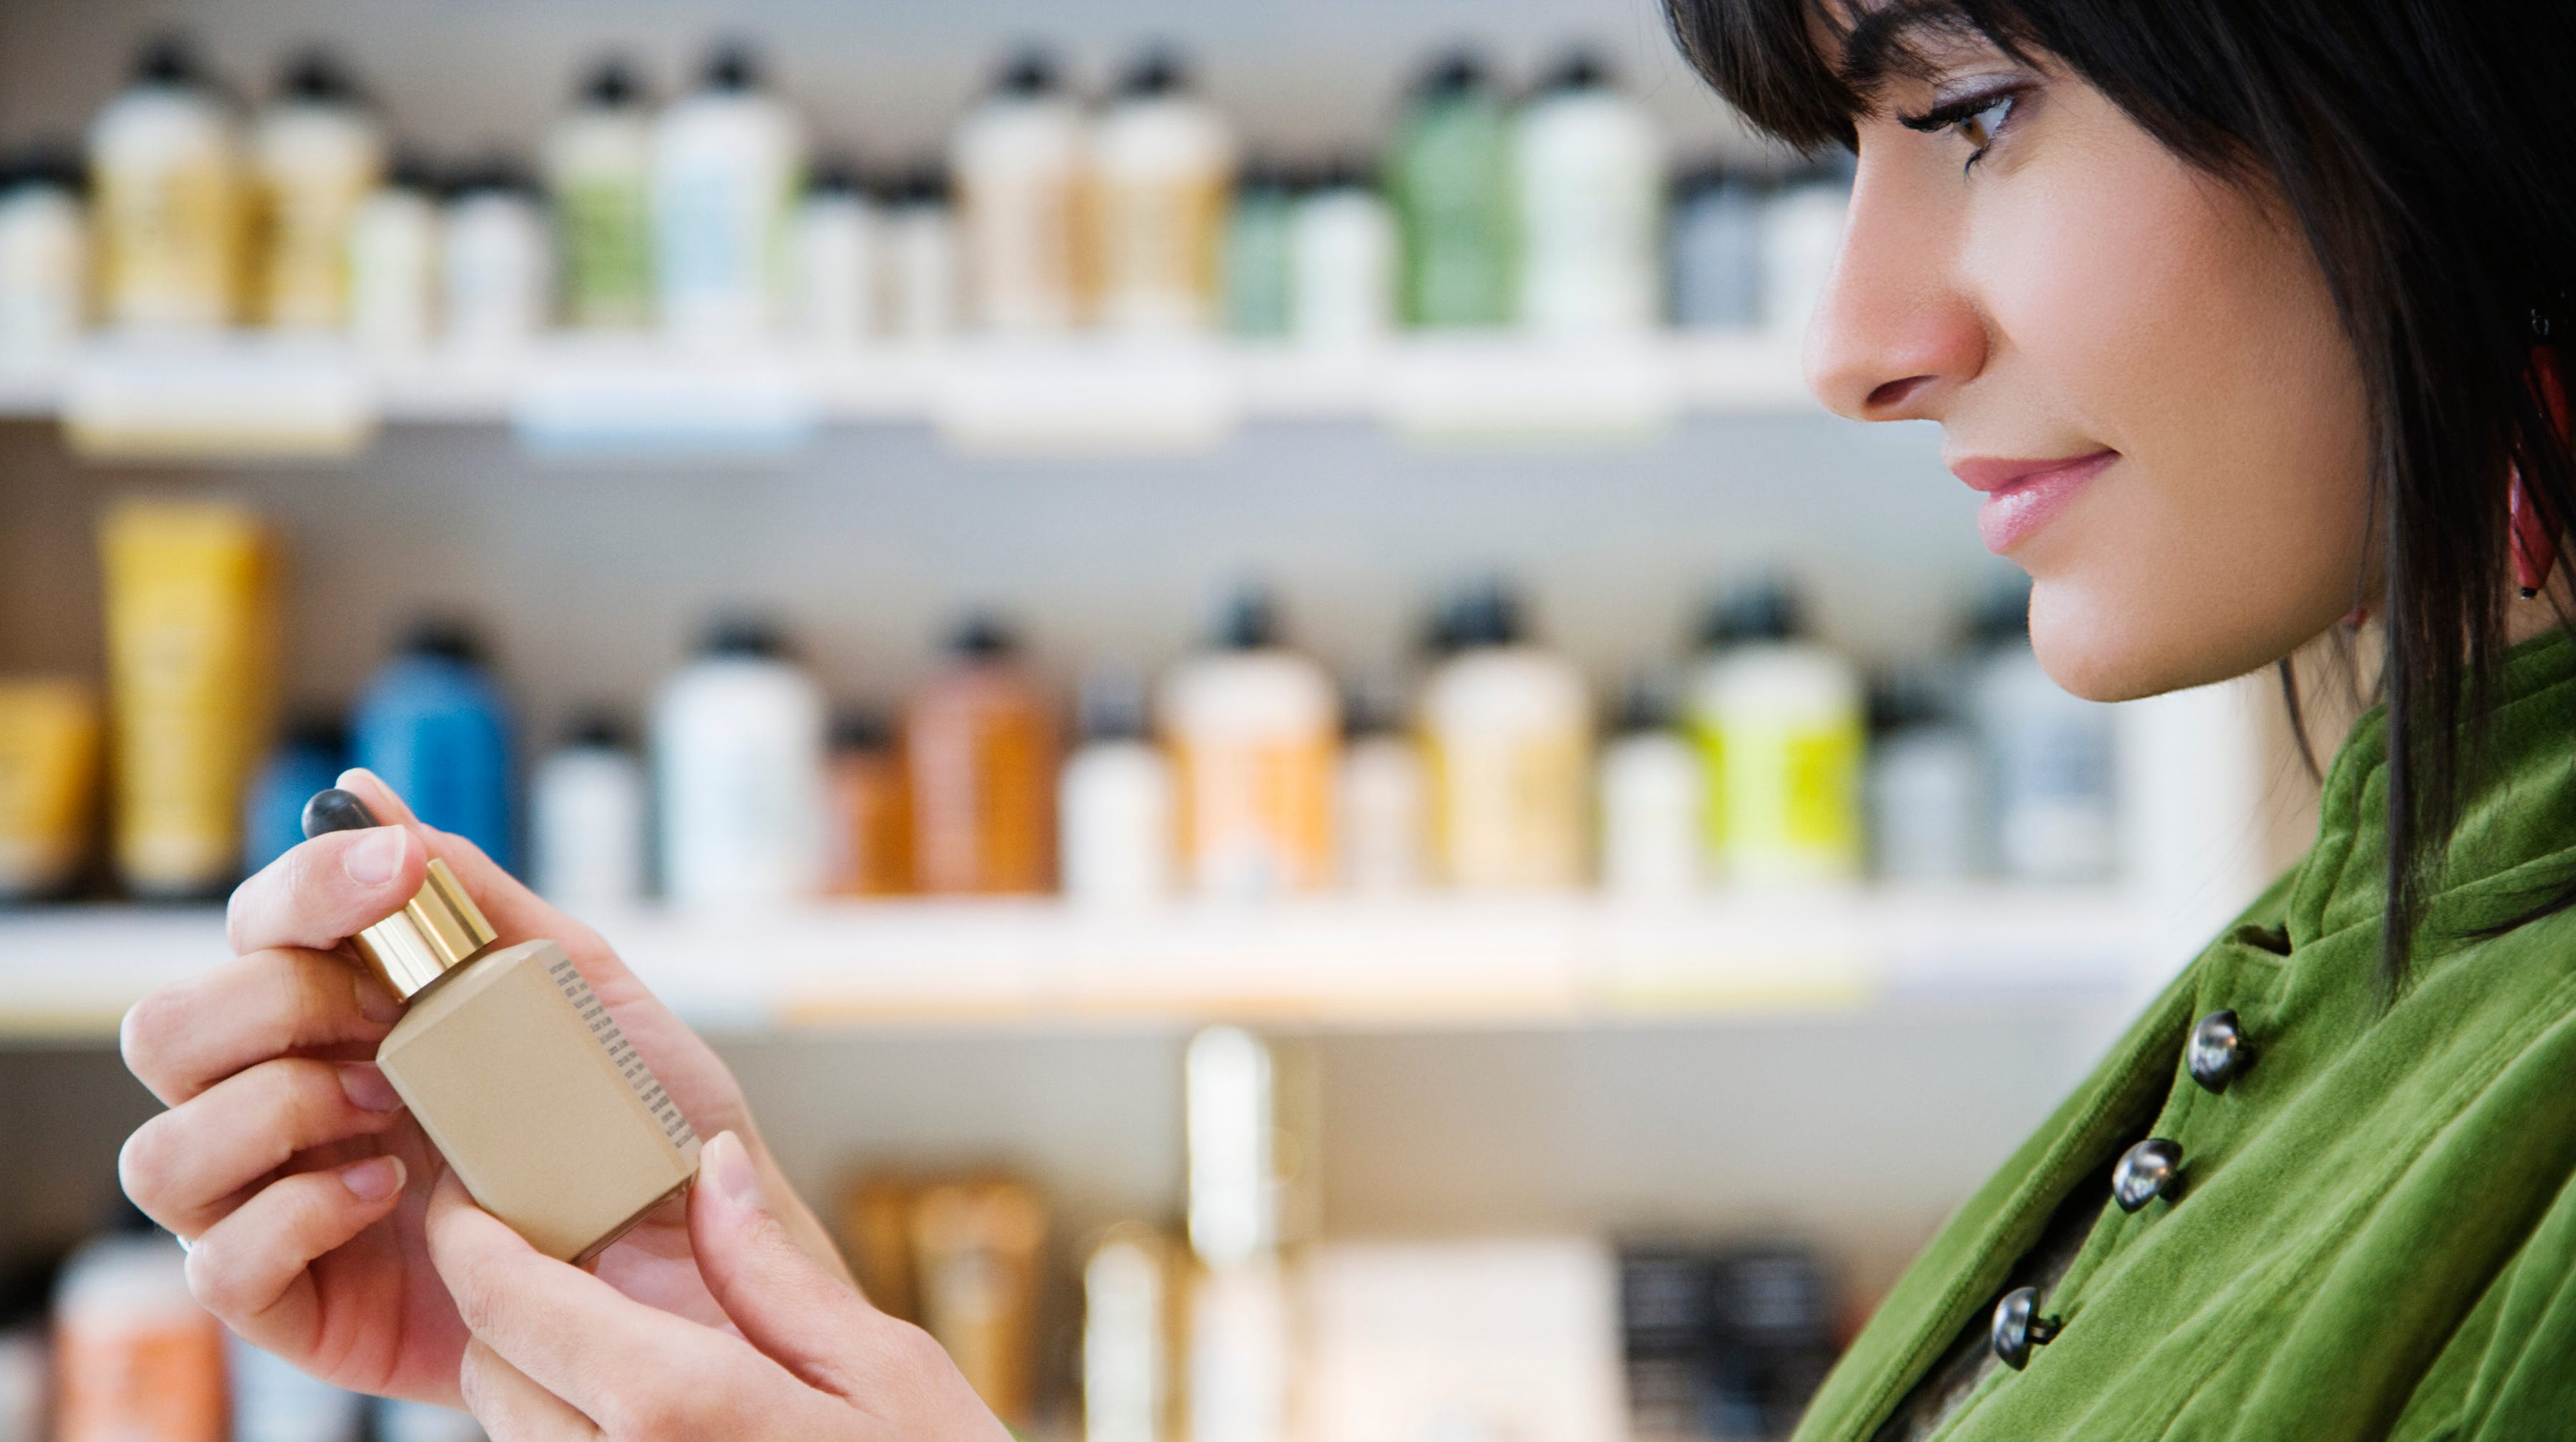 Consumer confusion around cosmetic ingredients has grown in recent years as the clean beauty movement gains momentum.